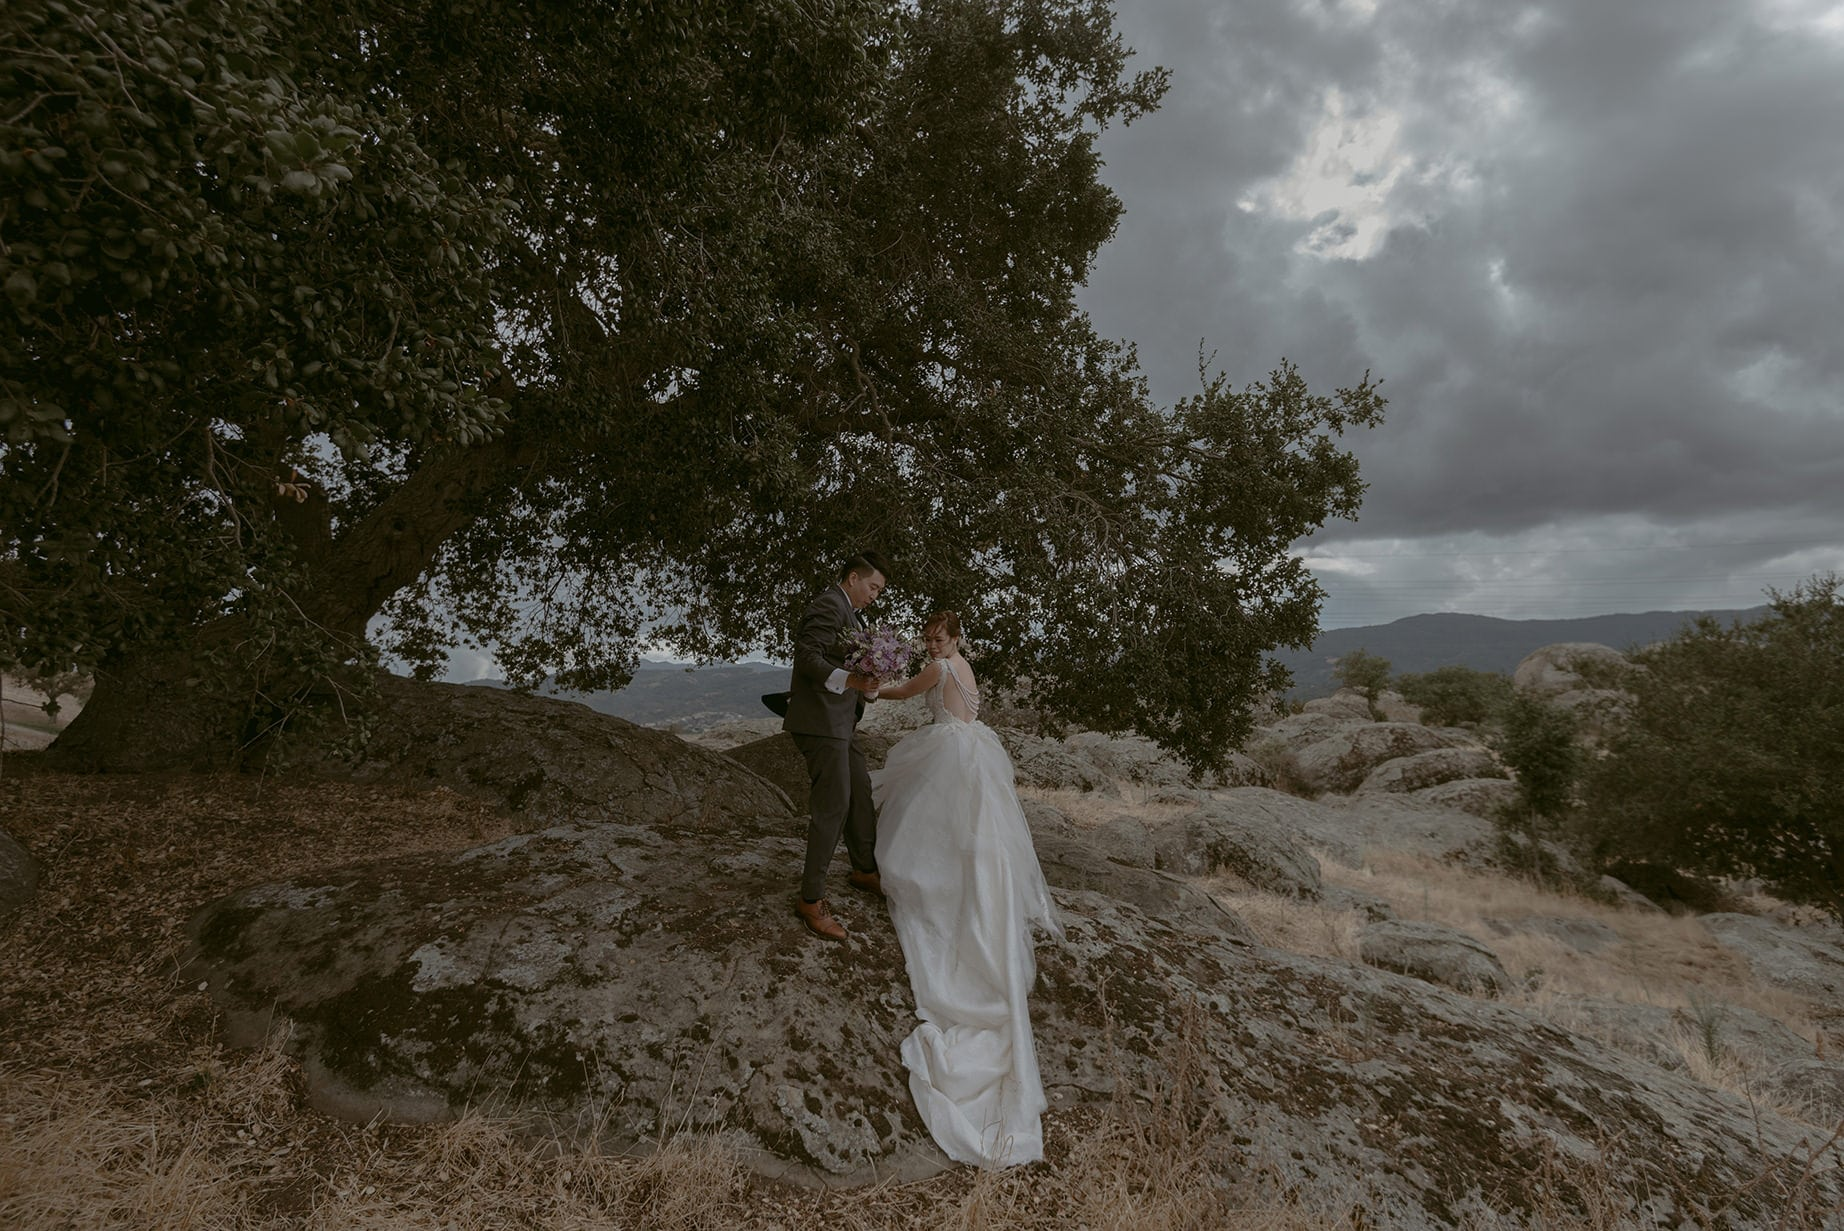 A Julie Pepin photo depicting a groom helping a bride with a long train up a rock on a cloudy day in front of a huge tree